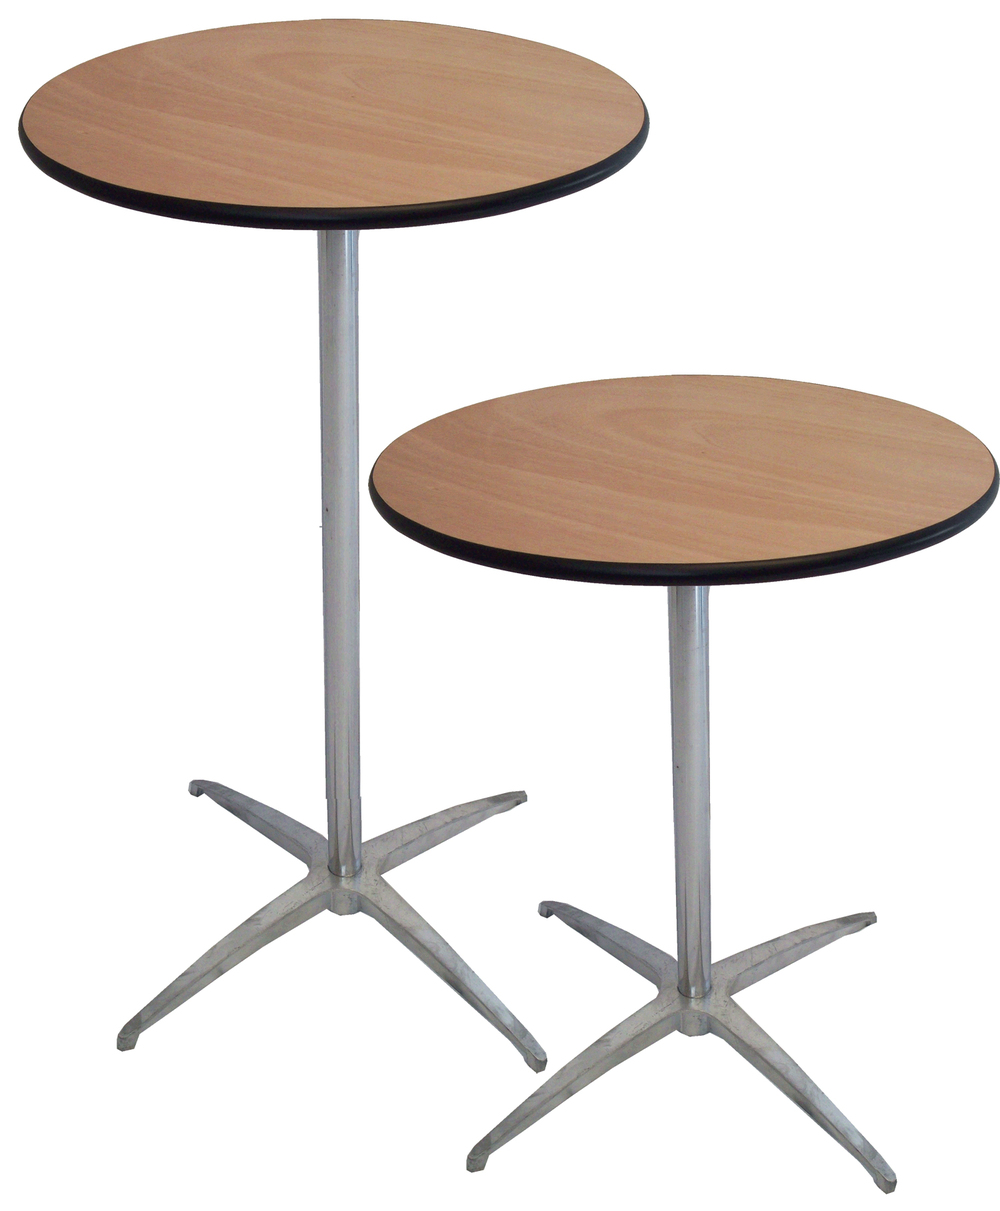 Standup Tables - 2 Sizes